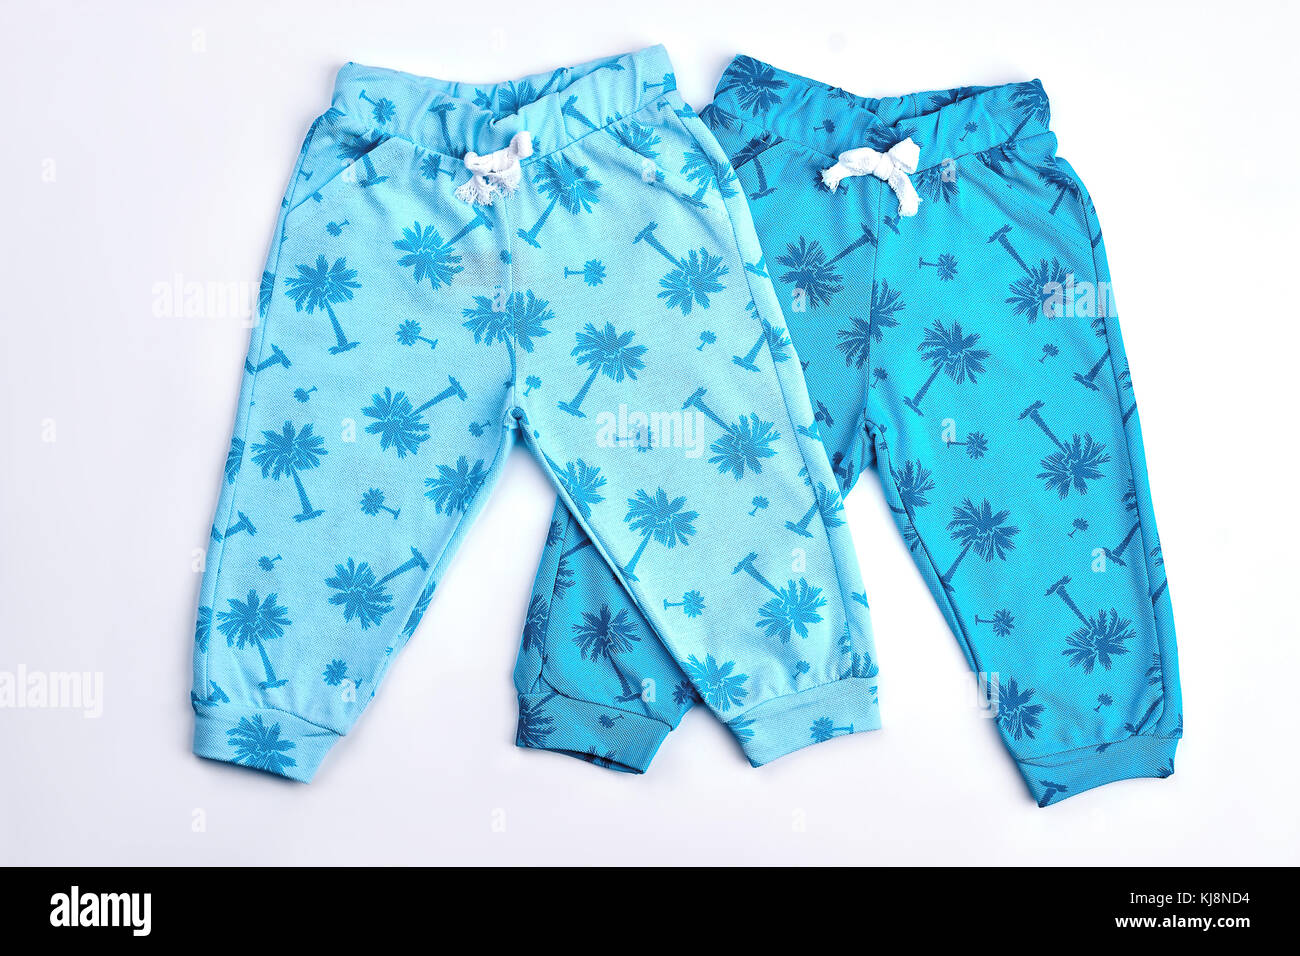 3a345f7bfc2e Toddlers collection of blue patterned trousers. Infant boys and ...